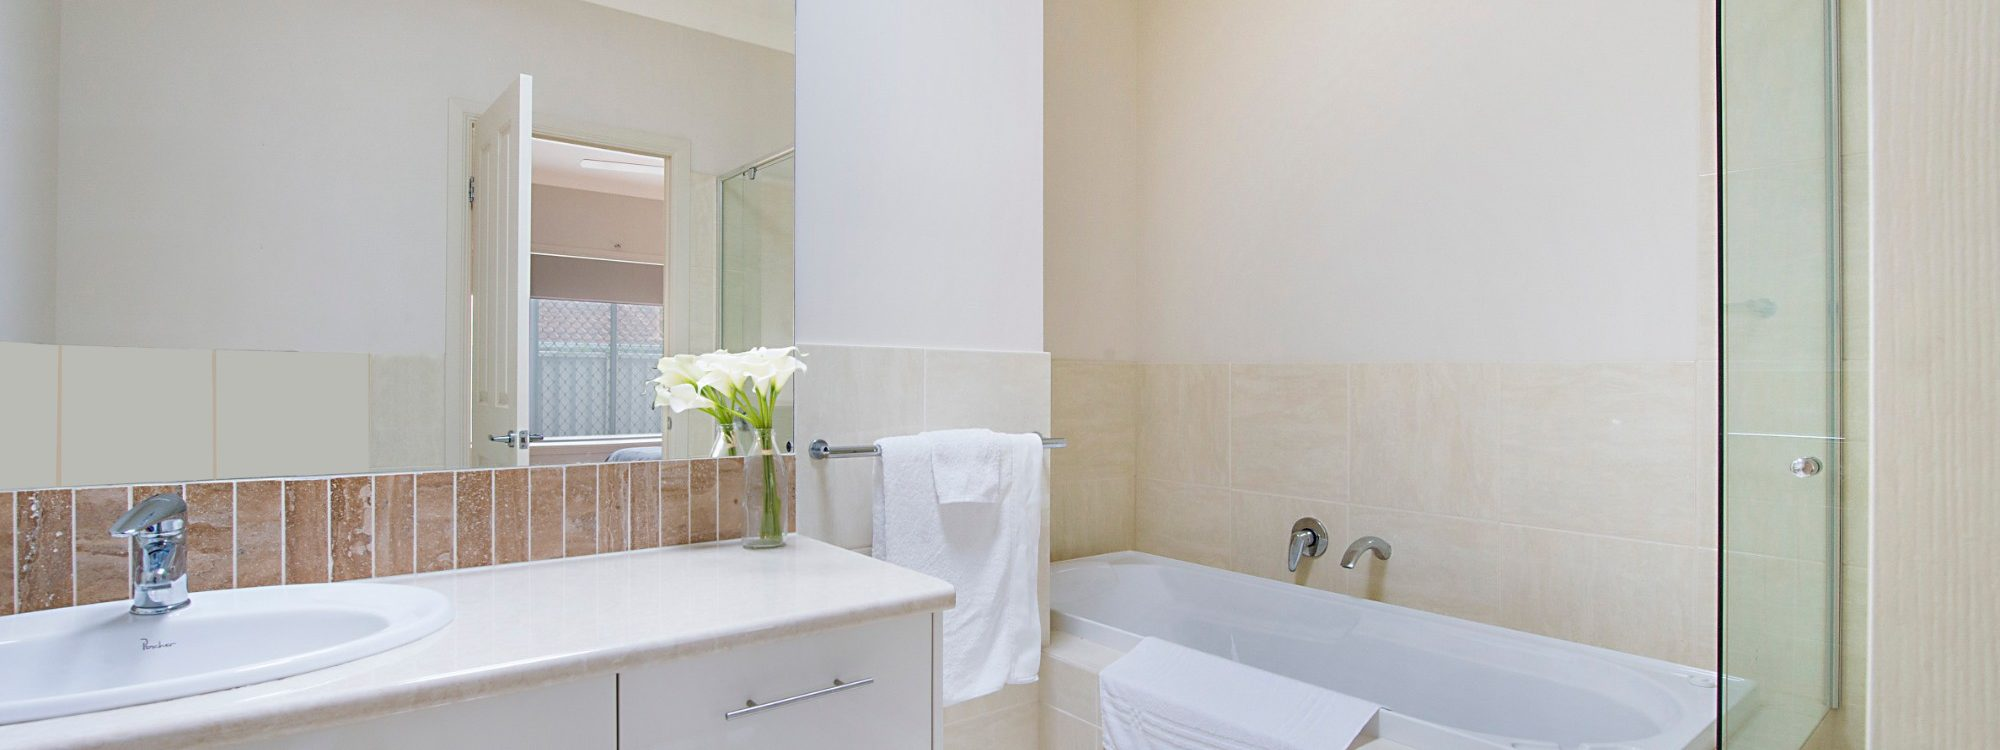 Sandy Shores - Gold Coast - Broadbeach - Bathroom 3